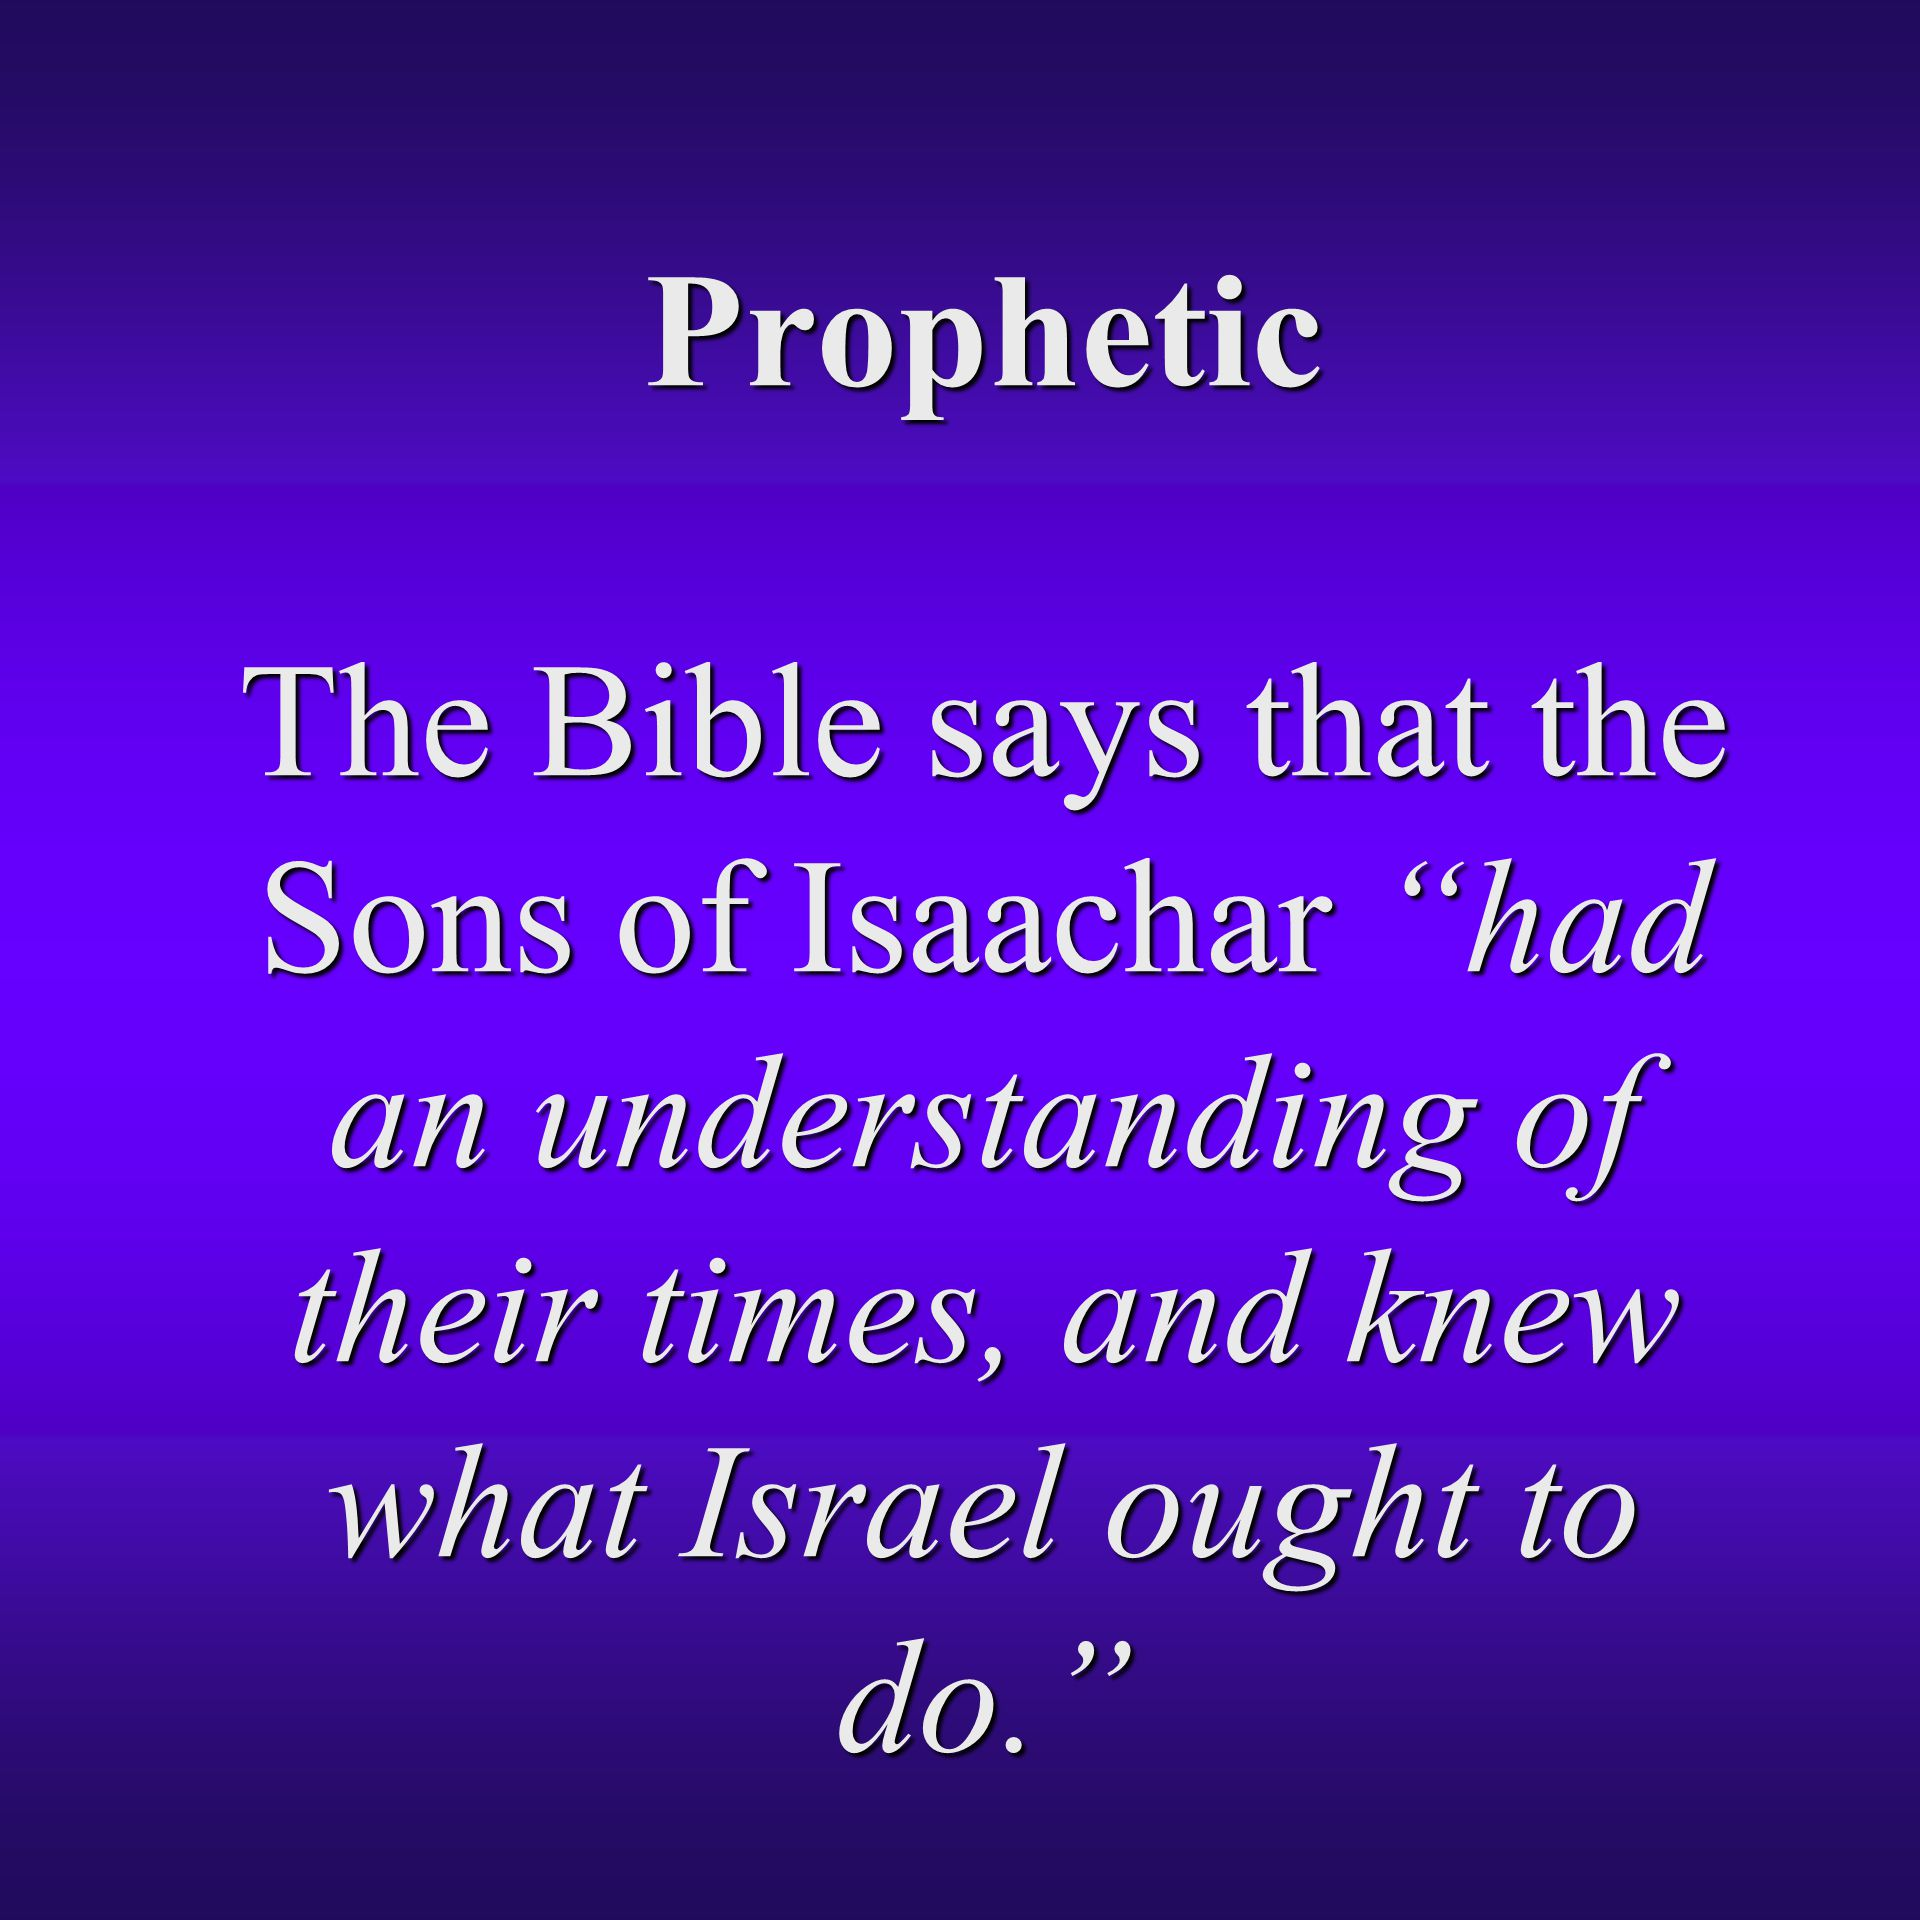 Prophetic The Bible says that the Sons of Isaachar had an understanding of their times, and knew what Israel ought to do.